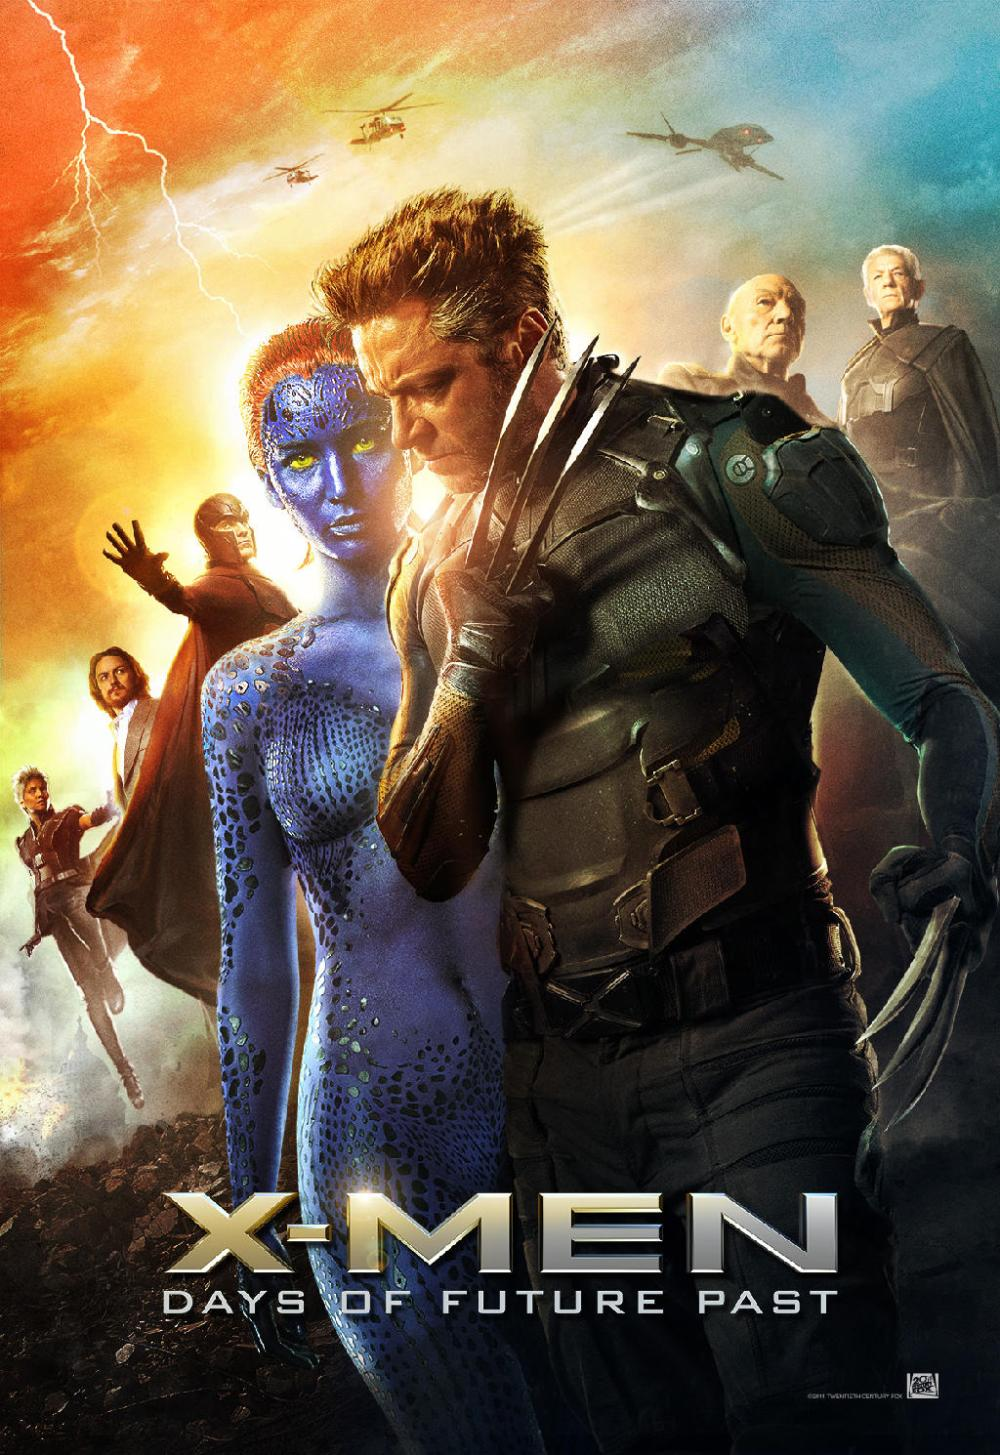 Posters-de-X-Men-Days-of-Future-Past-abril-criticsight-5